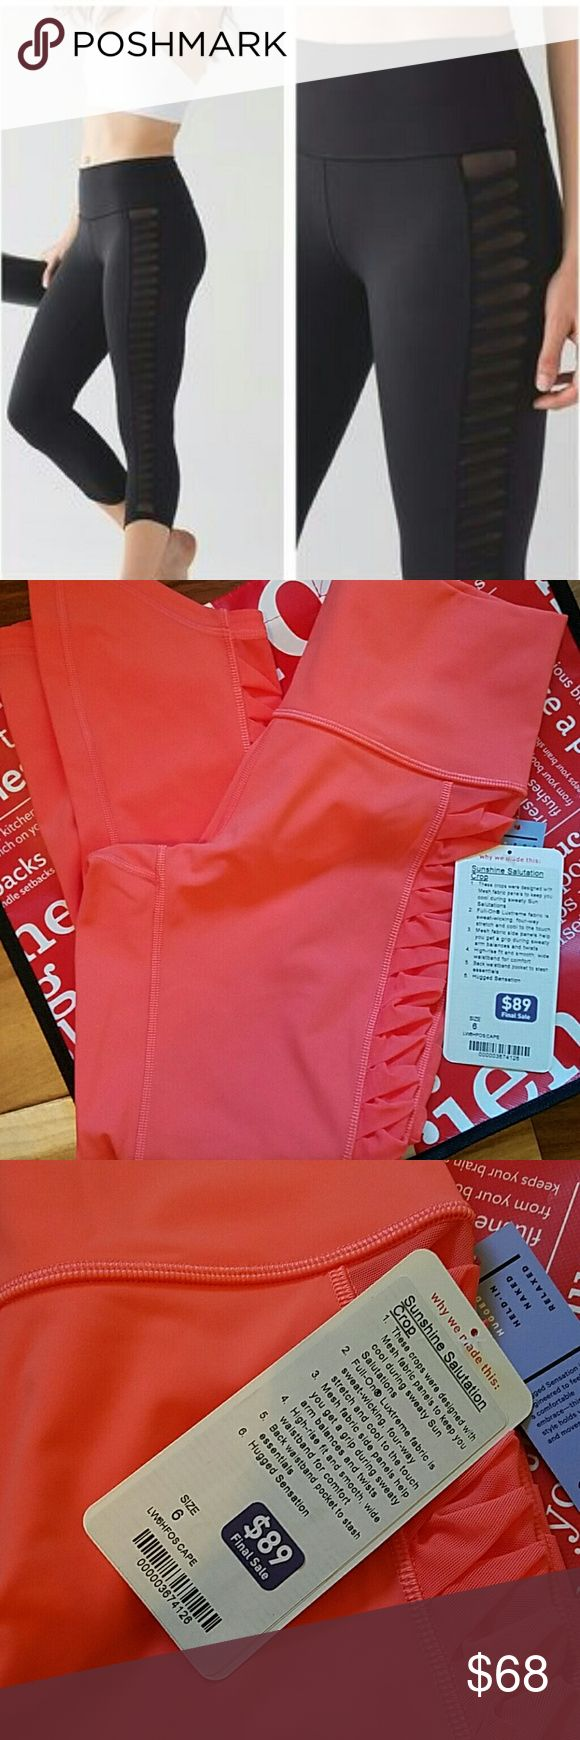 NWT LULULEMON SUNSHINE SALUTATION CROP -- Size 6 Brand: Lululemon Athletica sunshine Salutation Crop | Cape Red NOT black | black is stock photo only  Condition: New with tag || Size 6   ??NO TRADES  ??NO LOWBALL OFFERS  ??NO RUDE COMMENTS  ??NO MODELING  ??Please don't discuss prices in the comment box. Make a reasonable offer and I'll either counter, accept or decline.   I will try to respond to all inquiries in a timely manner. Please check out the rest of my closet, I have various…